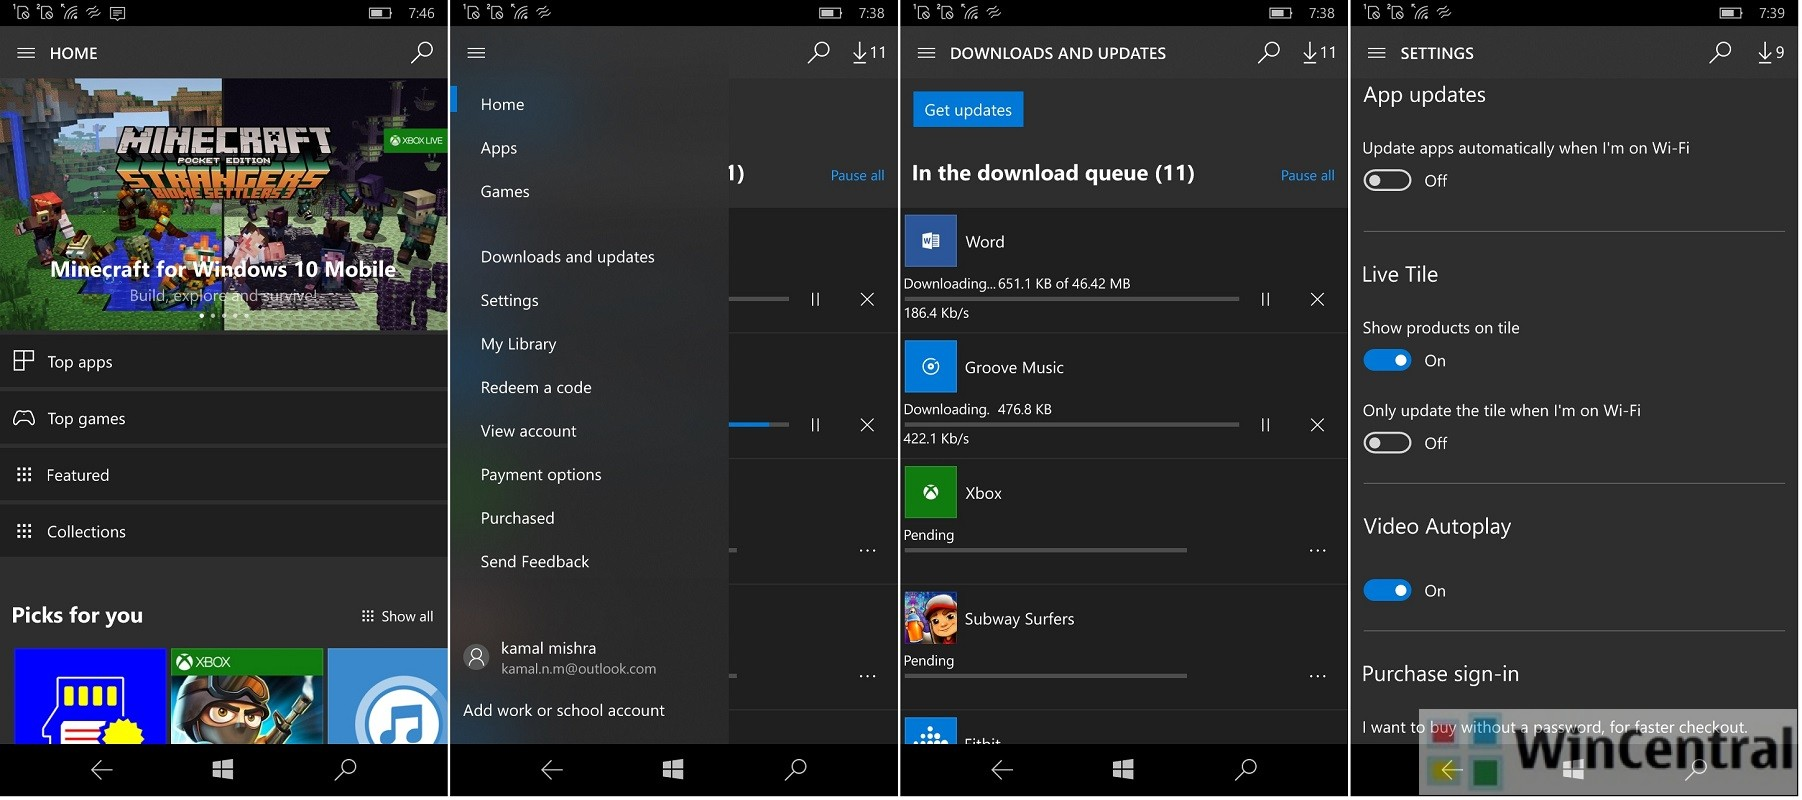 Windows 10 Mobile Store app removes fluent design with the